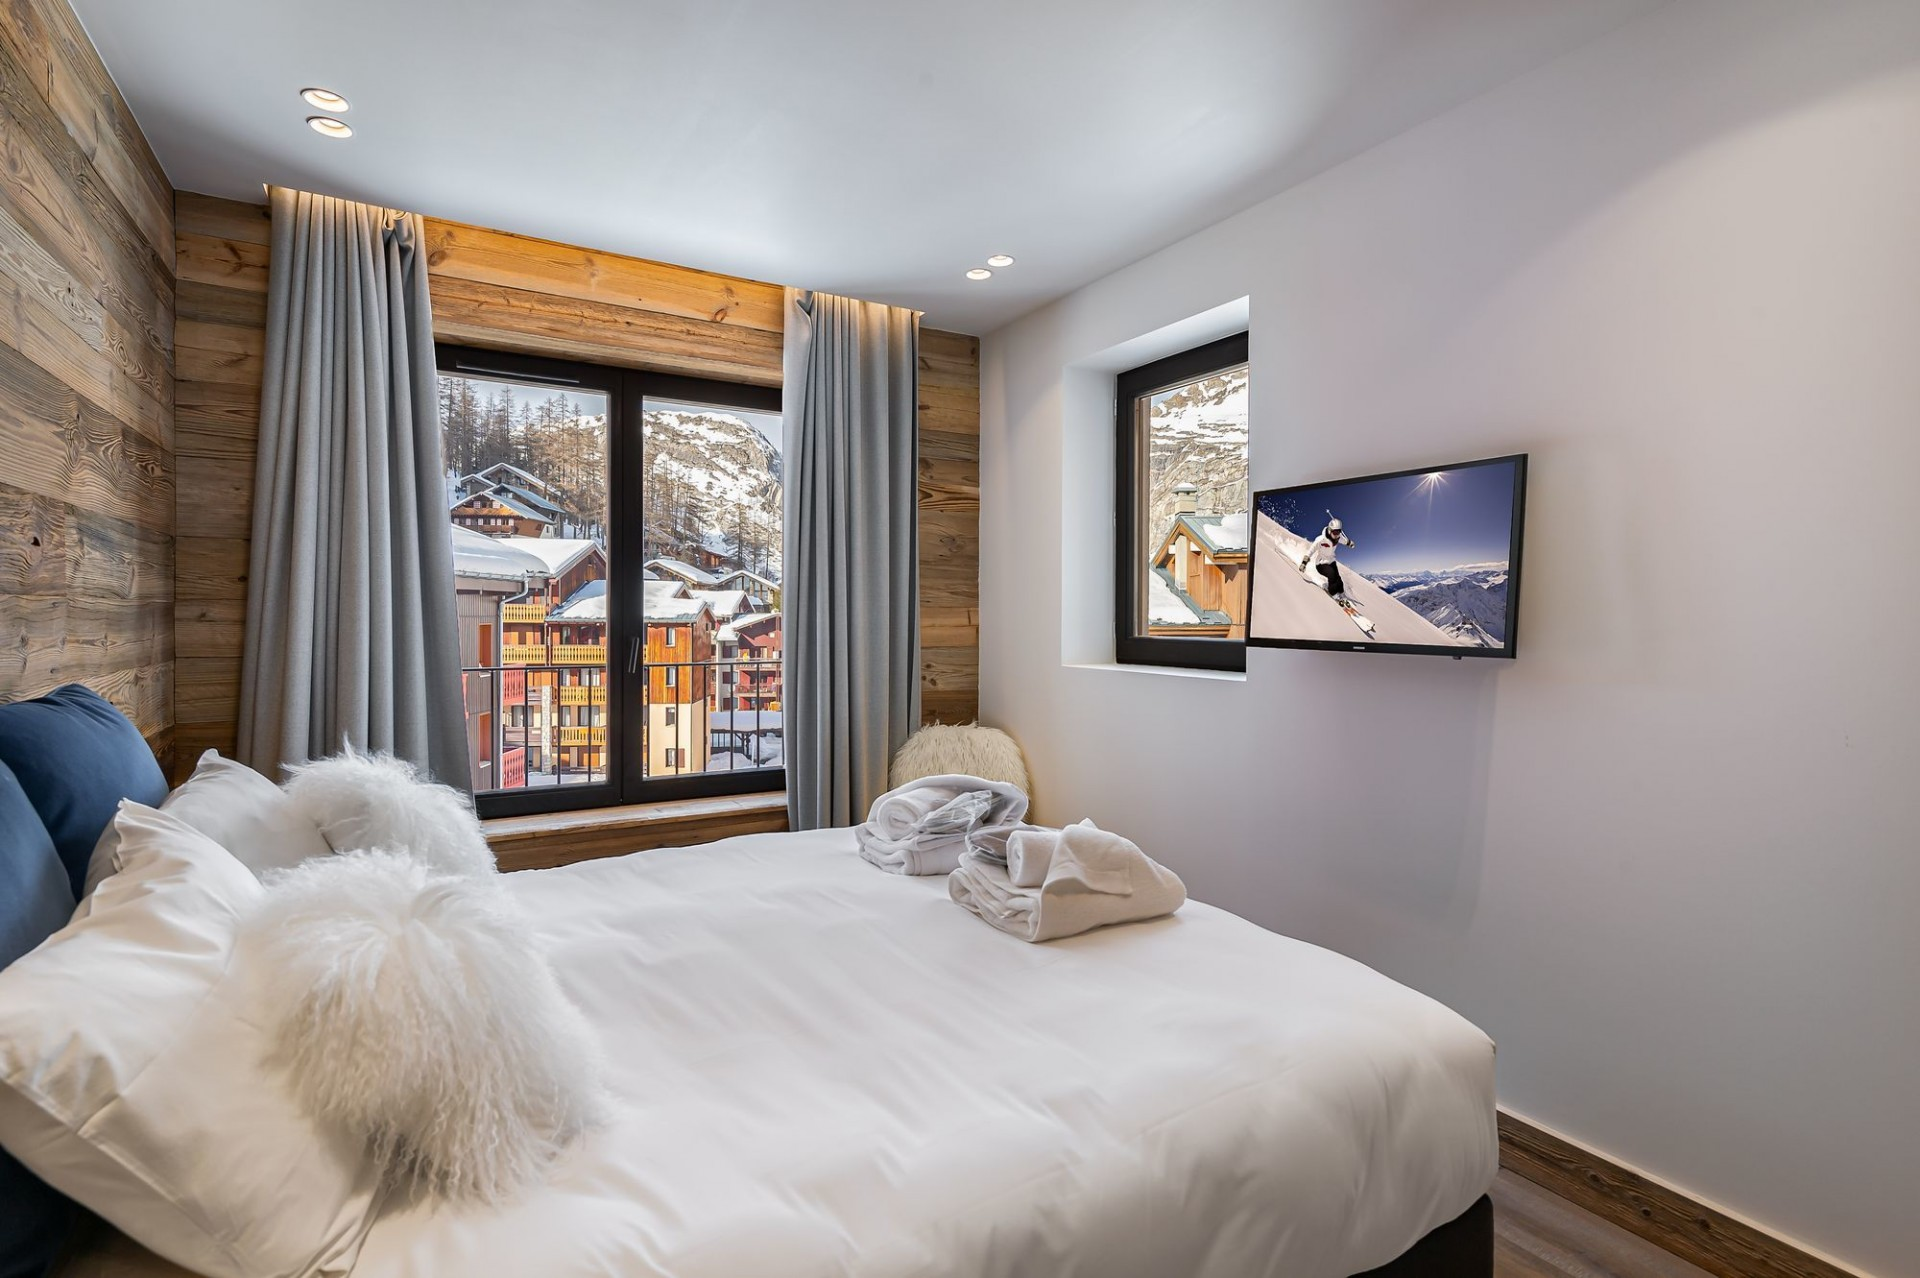 Val D'Isère Location Chalet Luxe Amazonite Chambre 2